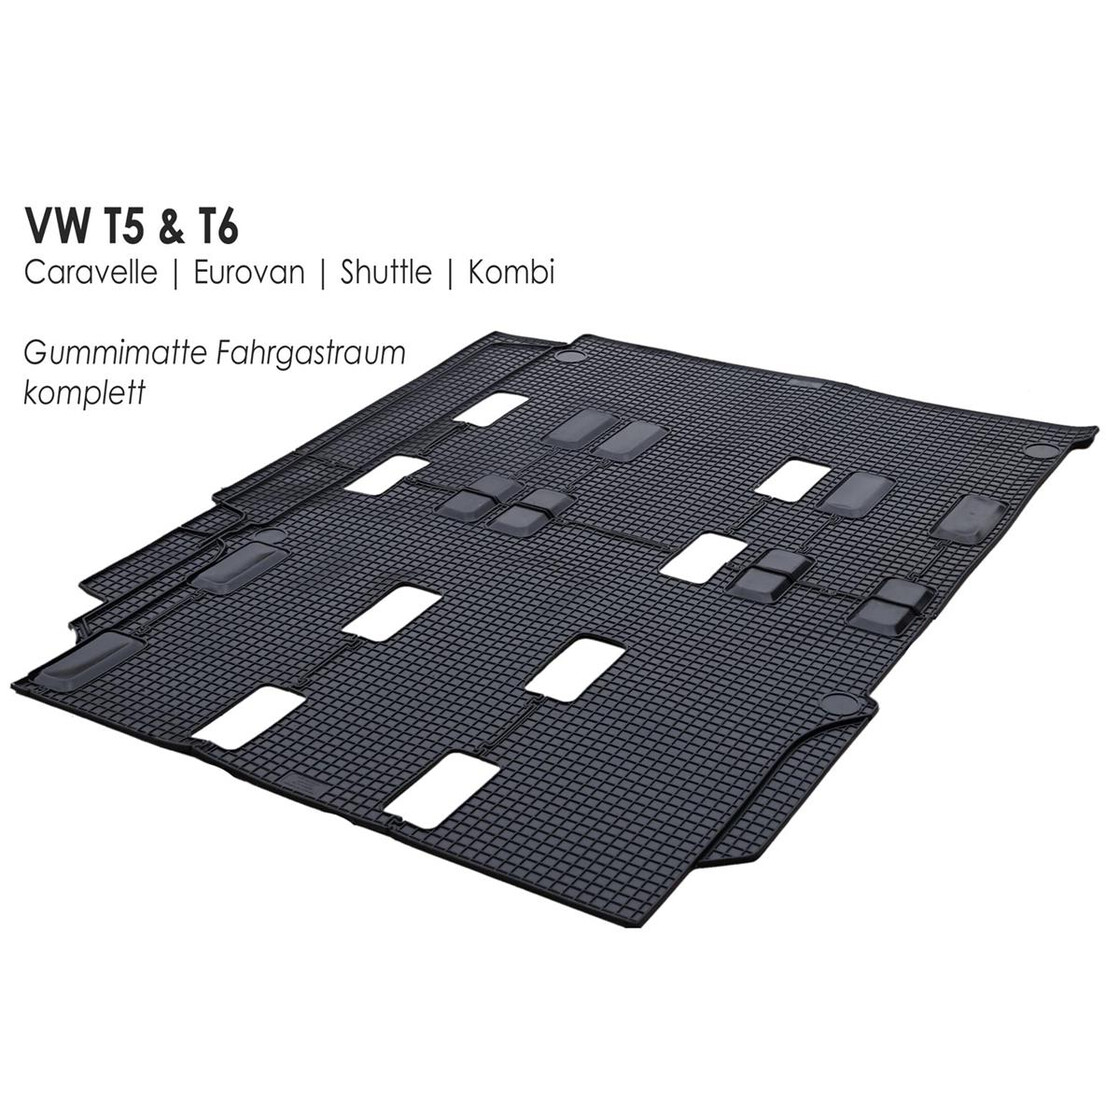 vw t5 t6 gummi fu matte fahrgastraum original kaufen. Black Bedroom Furniture Sets. Home Design Ideas